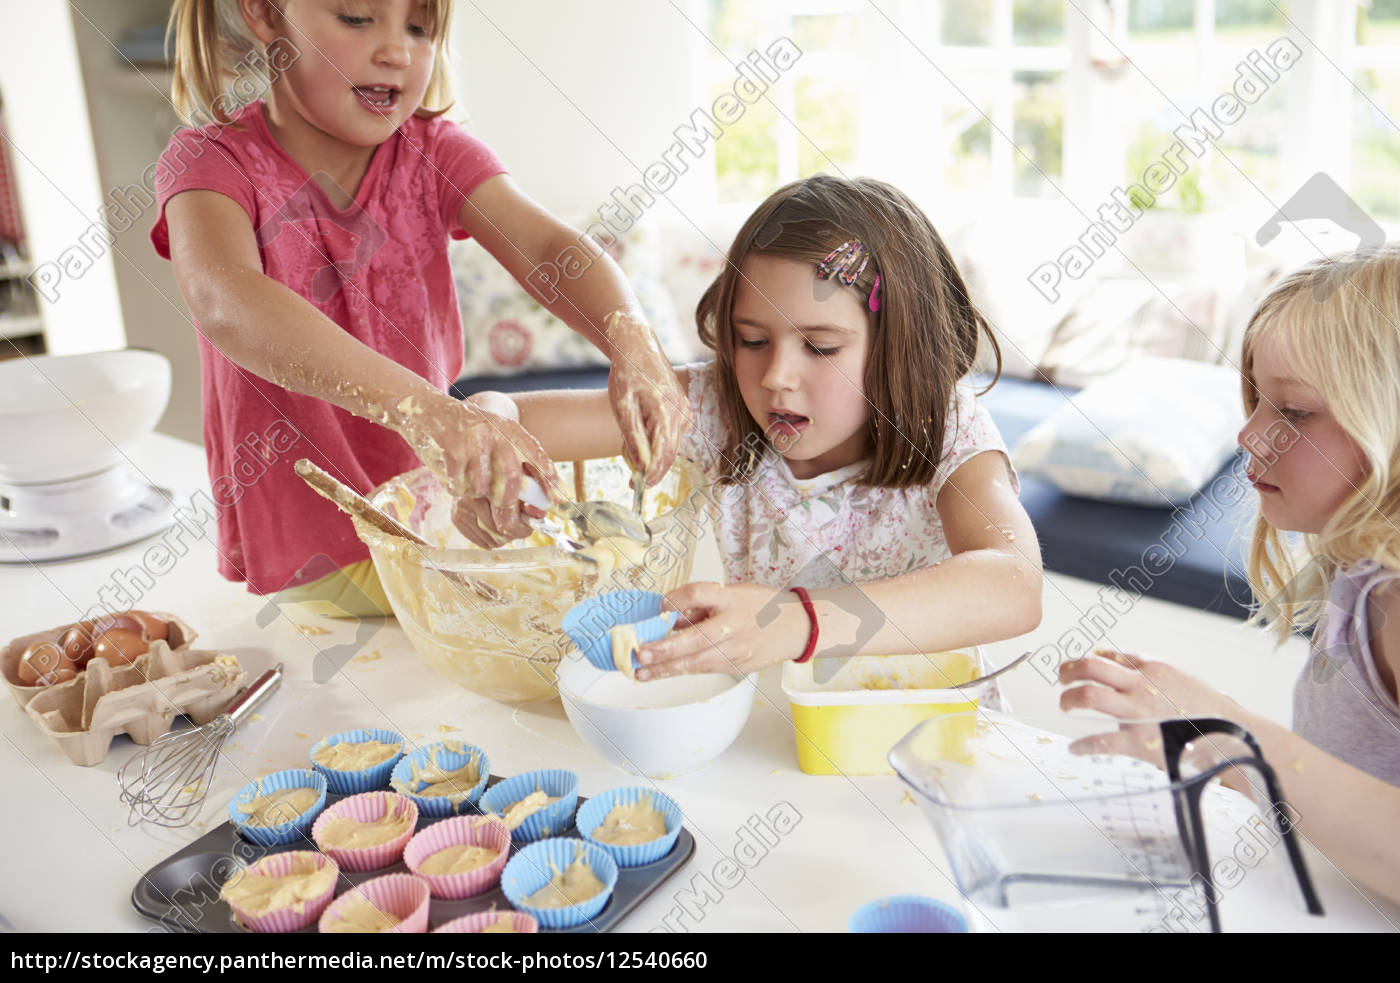 three, girls, making, cupcakes, in, kitchen - 12540660